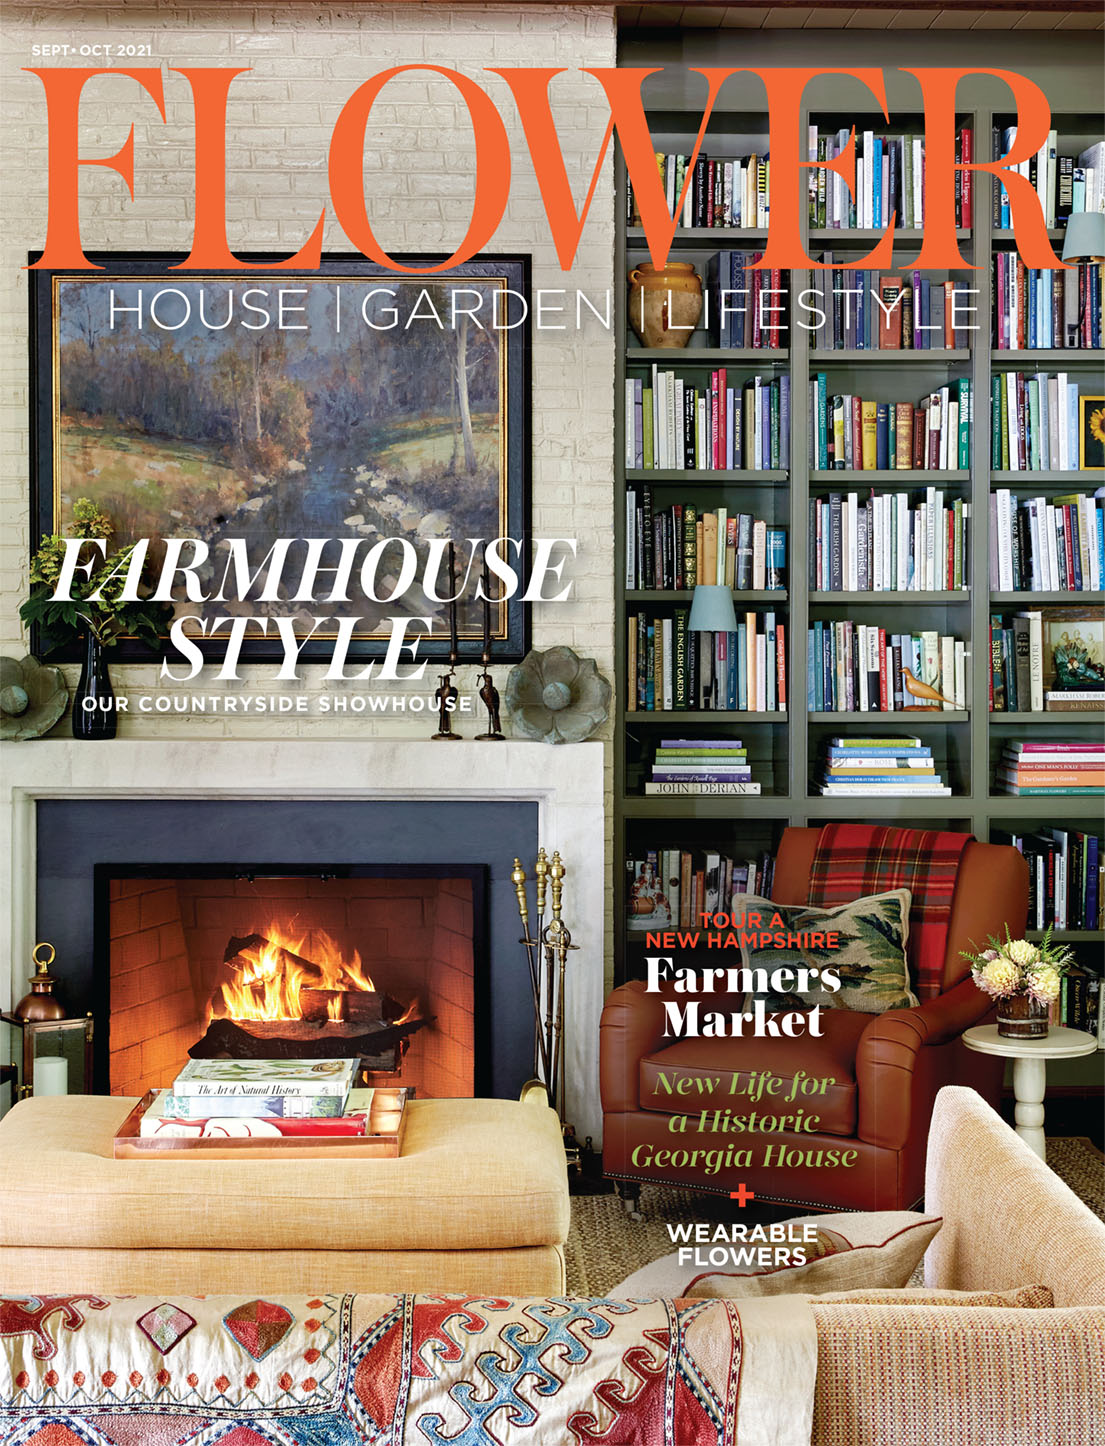 On the Cover: The inviting living room at Brierfield Farm, our countryside showhouse, exudes warm and comfort with a palette that takes its cue from the surrounding setting. Photographed by David Hillegas.